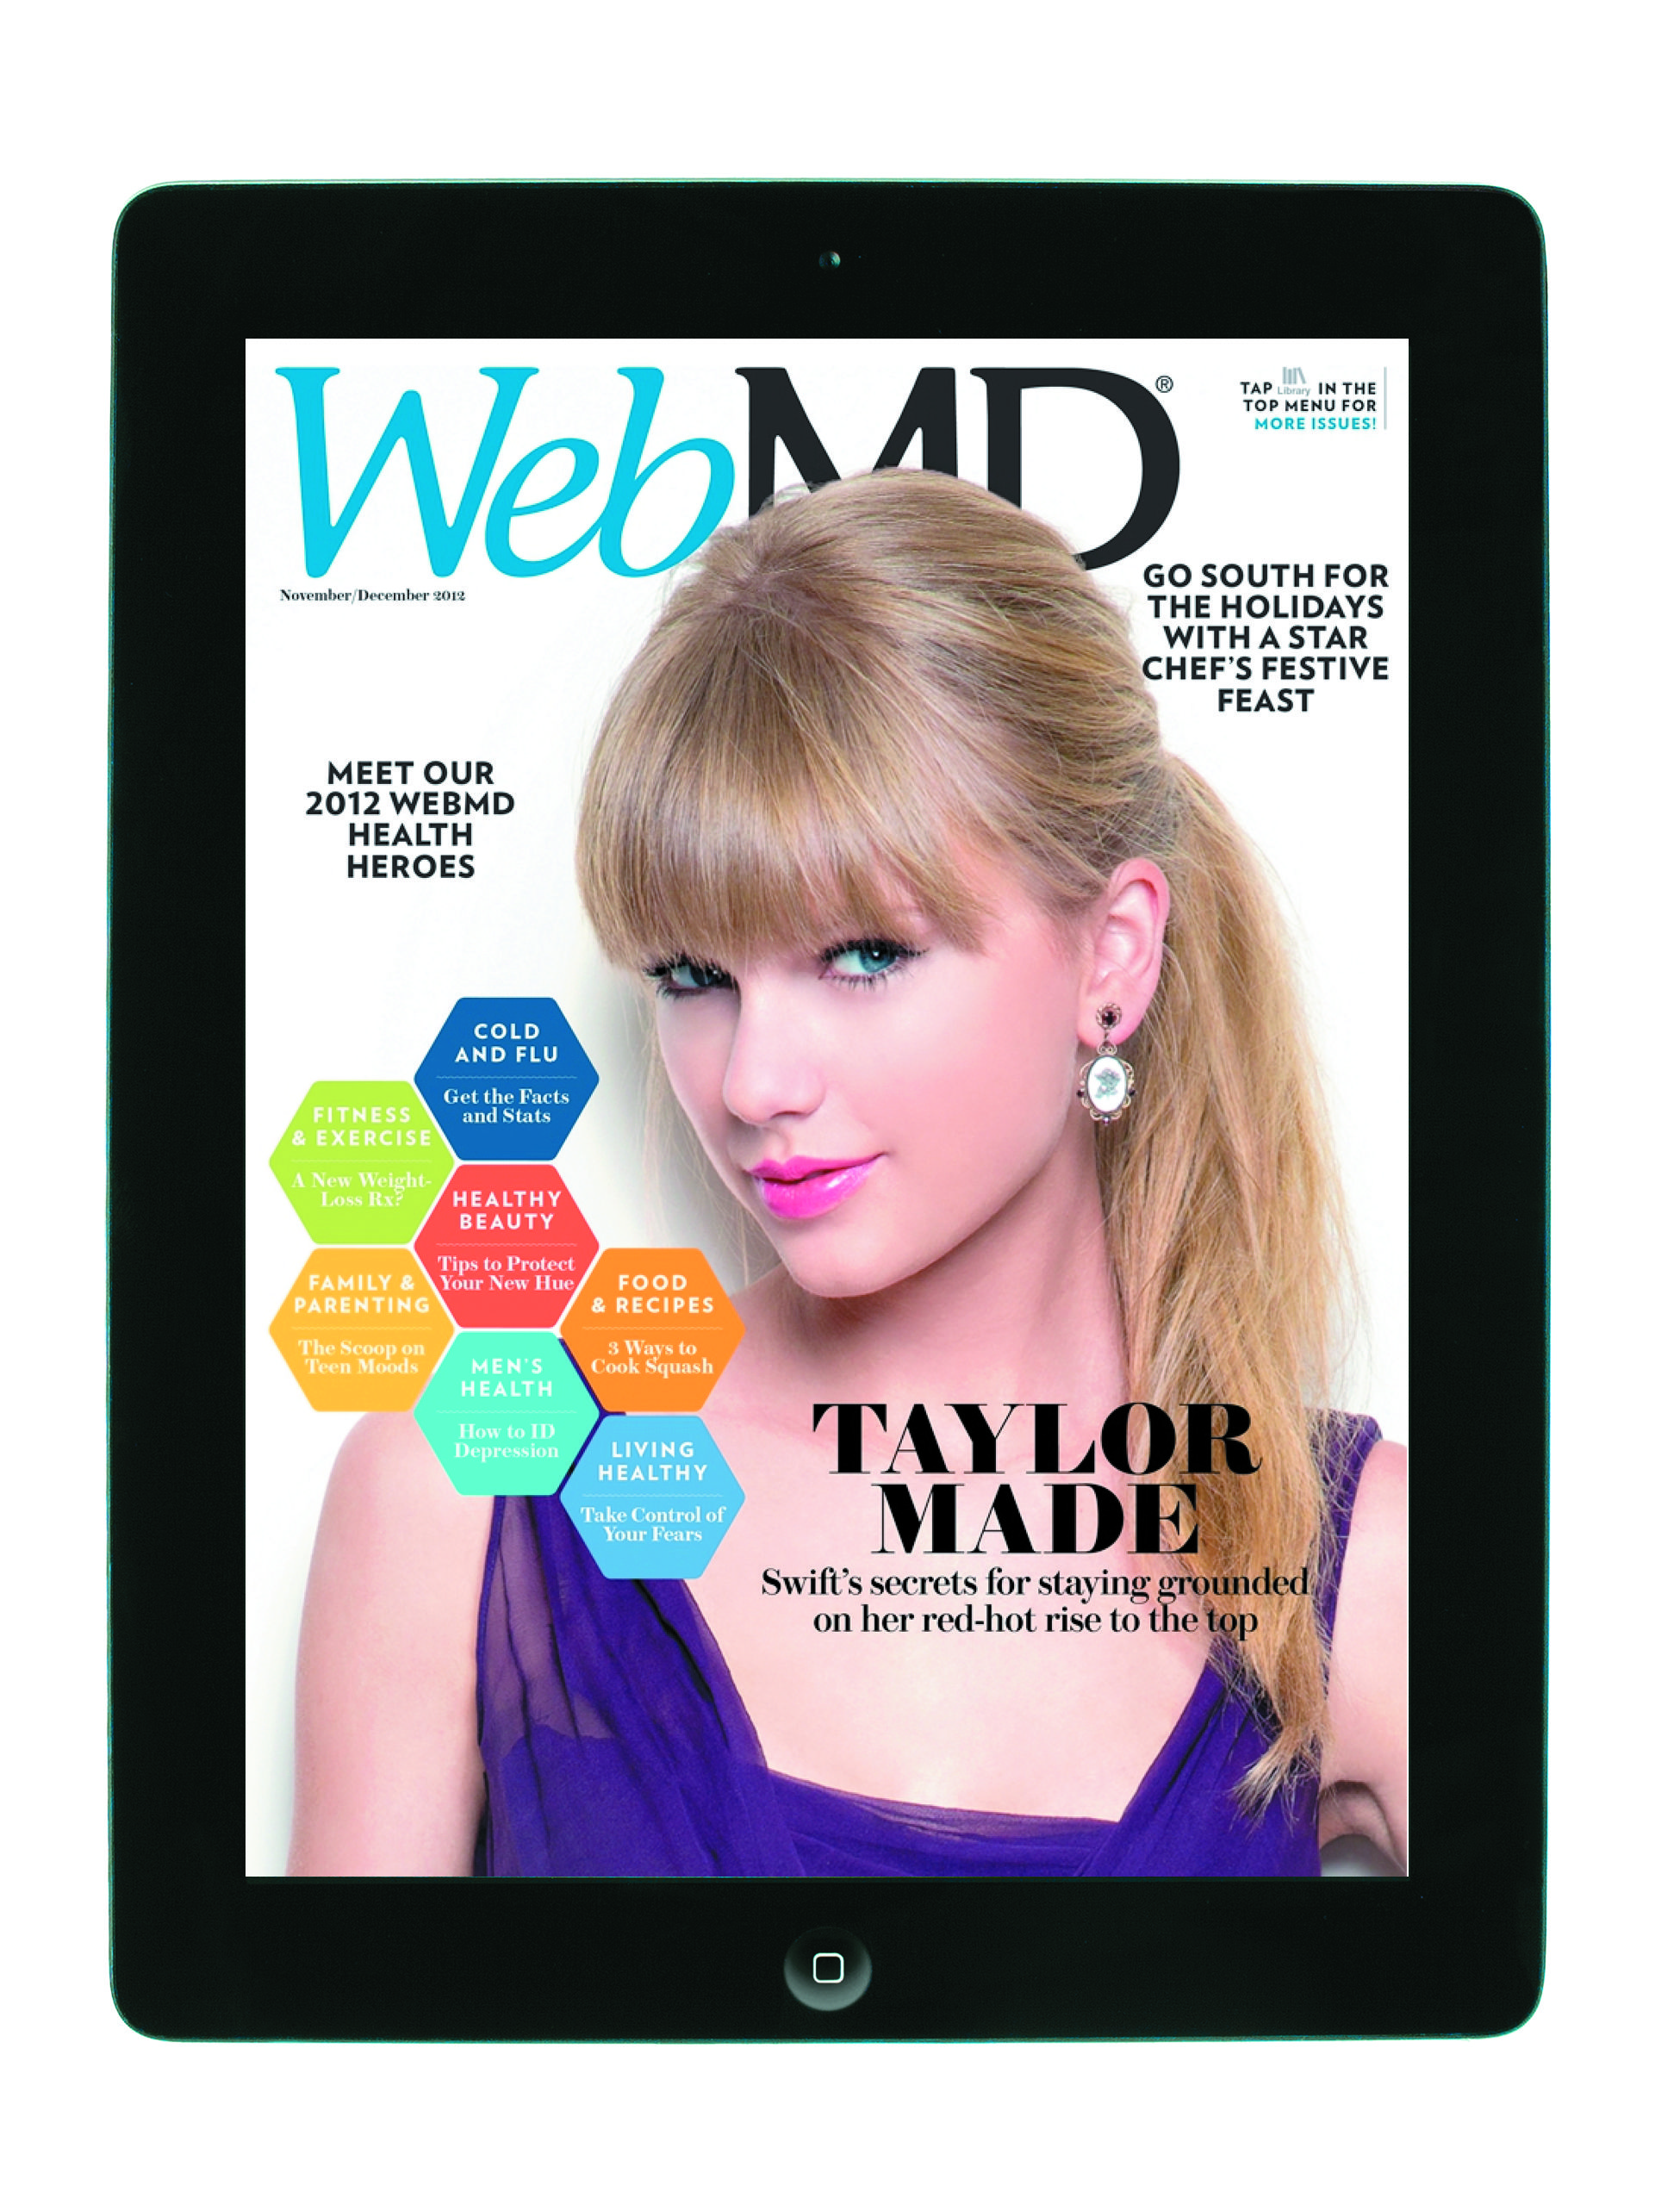 An example of our iPad app using MagPlus. I collected the necessary digital assets and assisted with the Mag Plus creation in every WebMD issue.